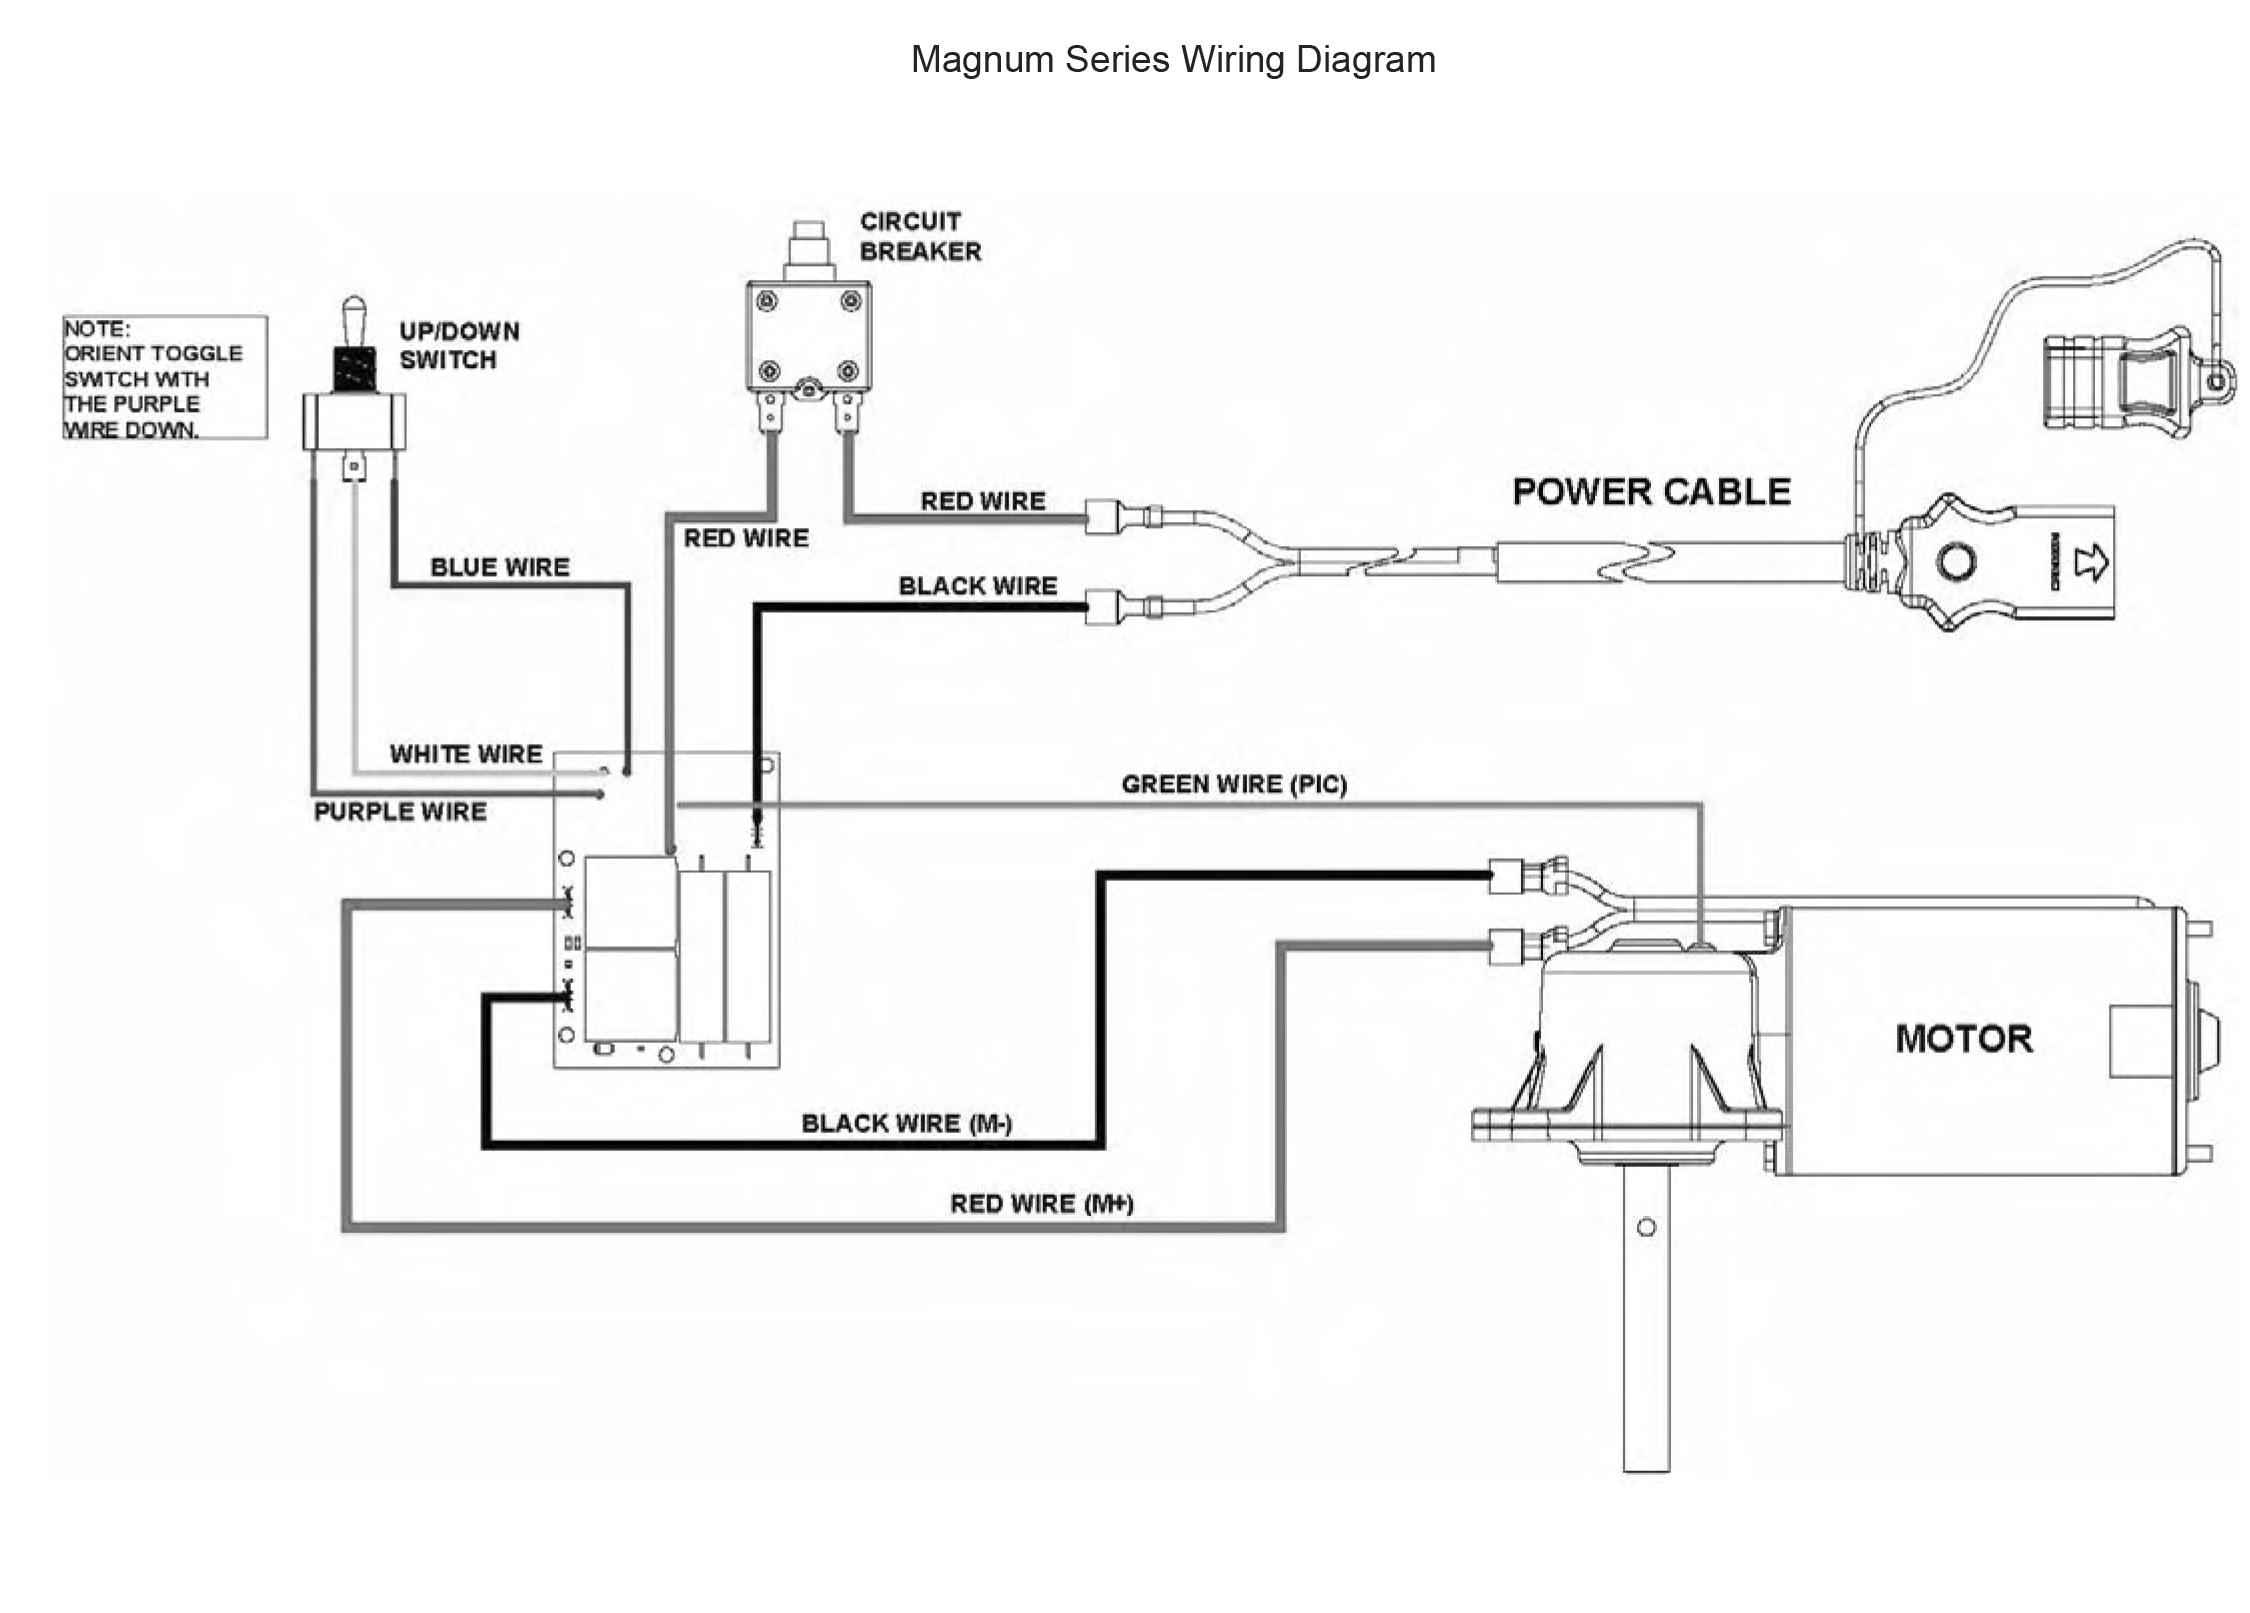 Wiring Diagram Cannon Mag 10